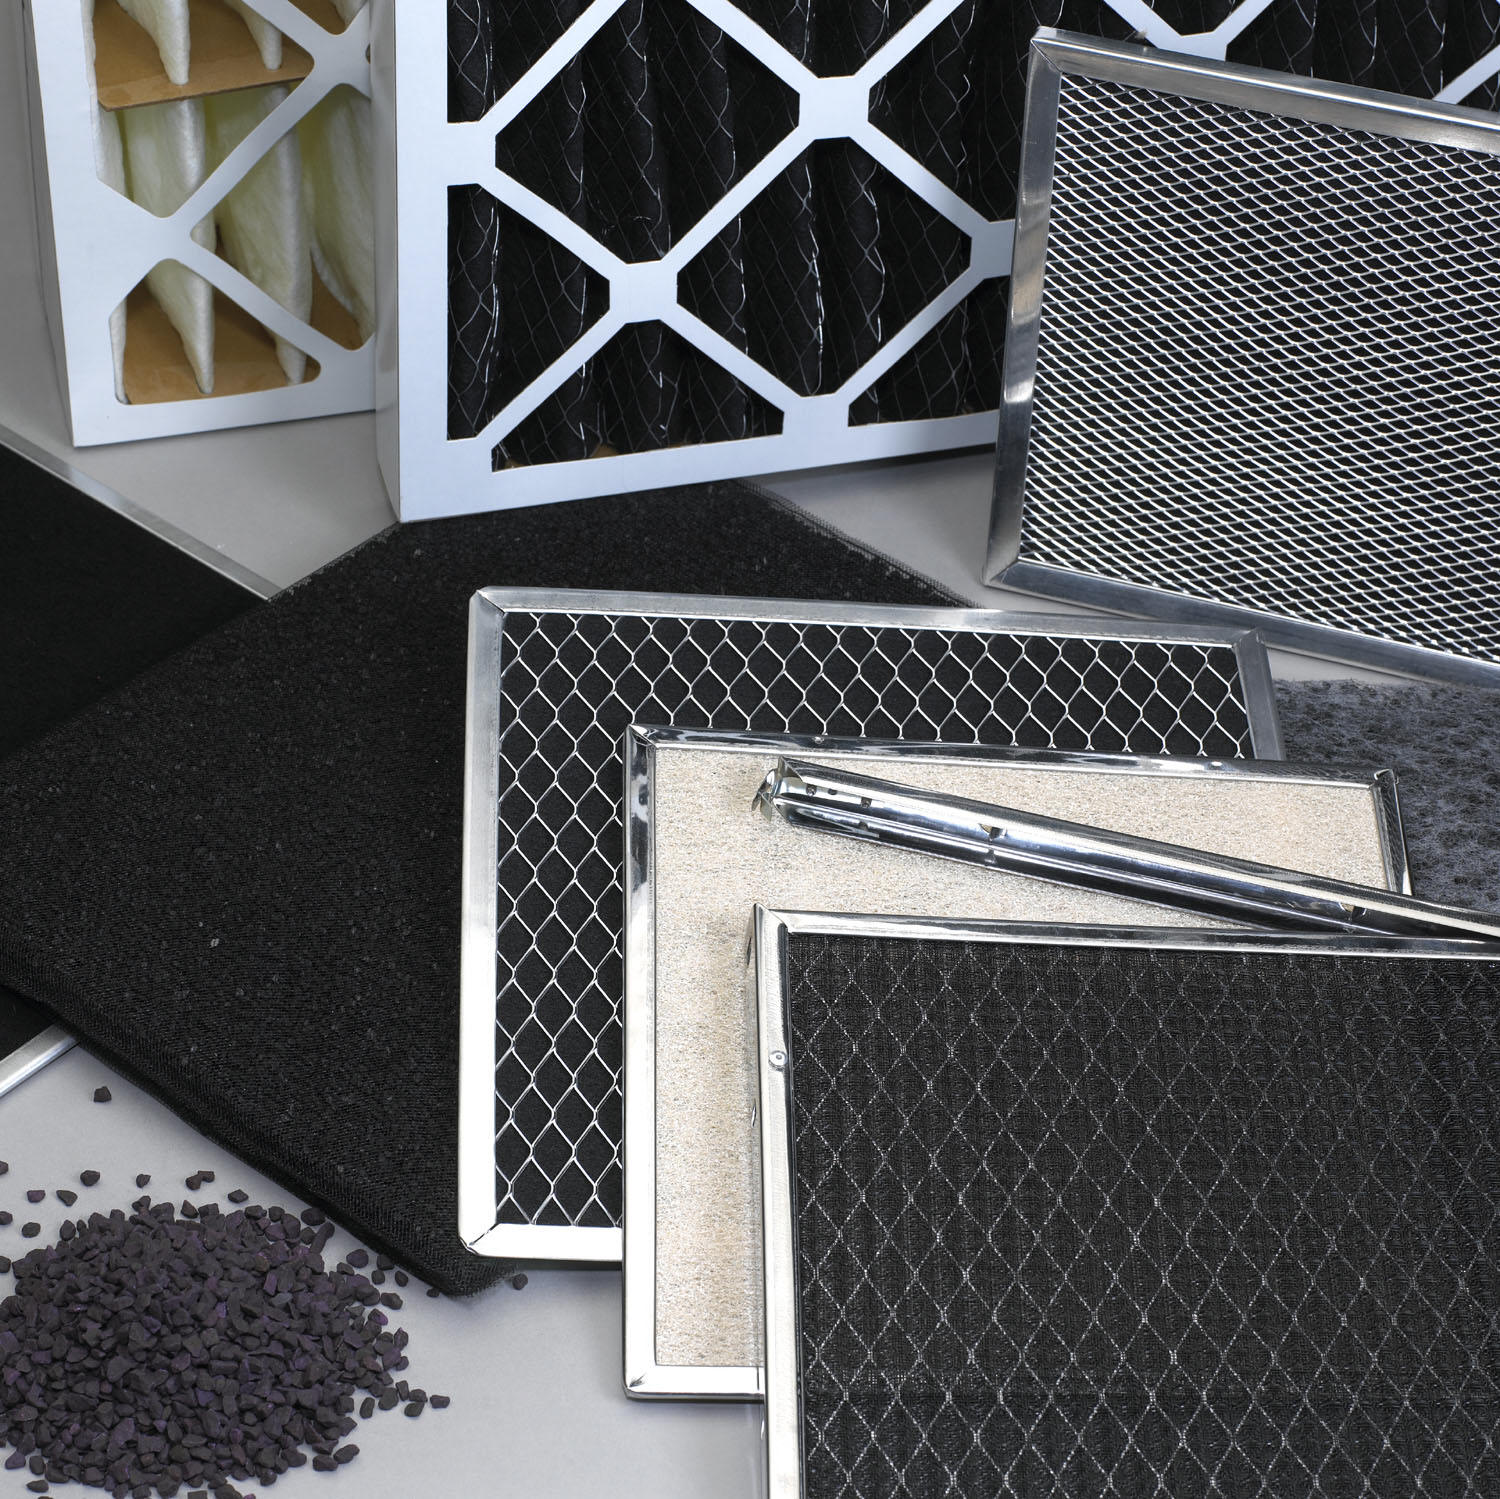 a photo of Permatron filters - activated carbon